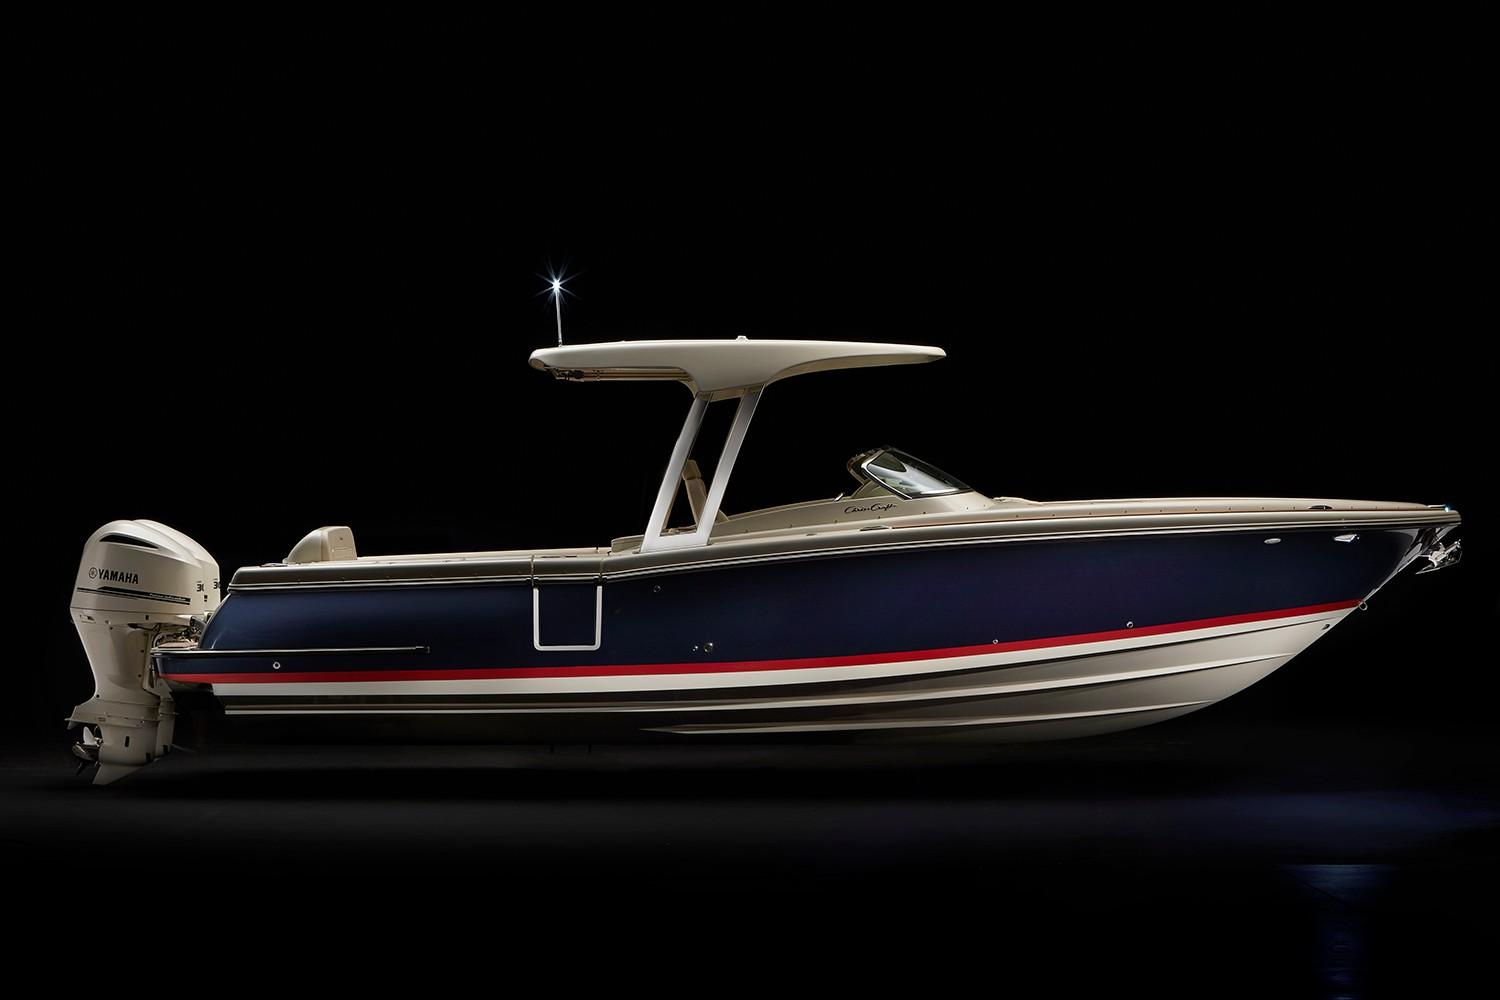 2019 Chris-Craft Calypso 30 in Bridgeport, New York